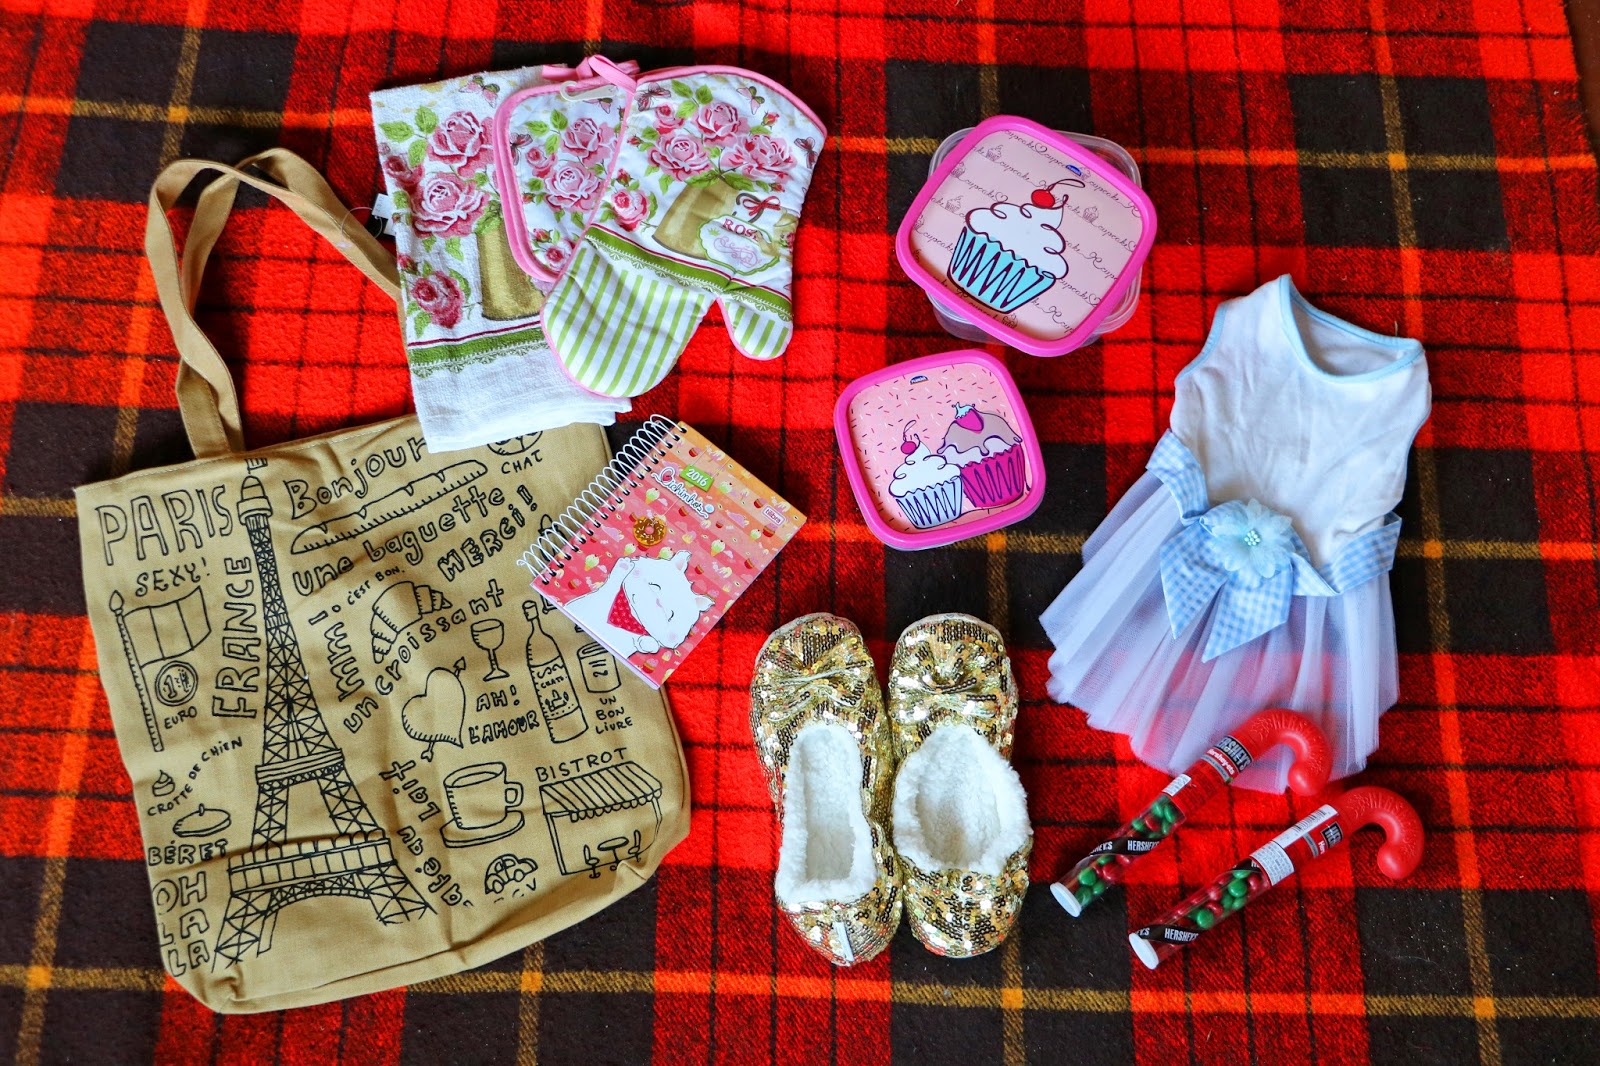 Really cute Christmas presents for a girly girl!